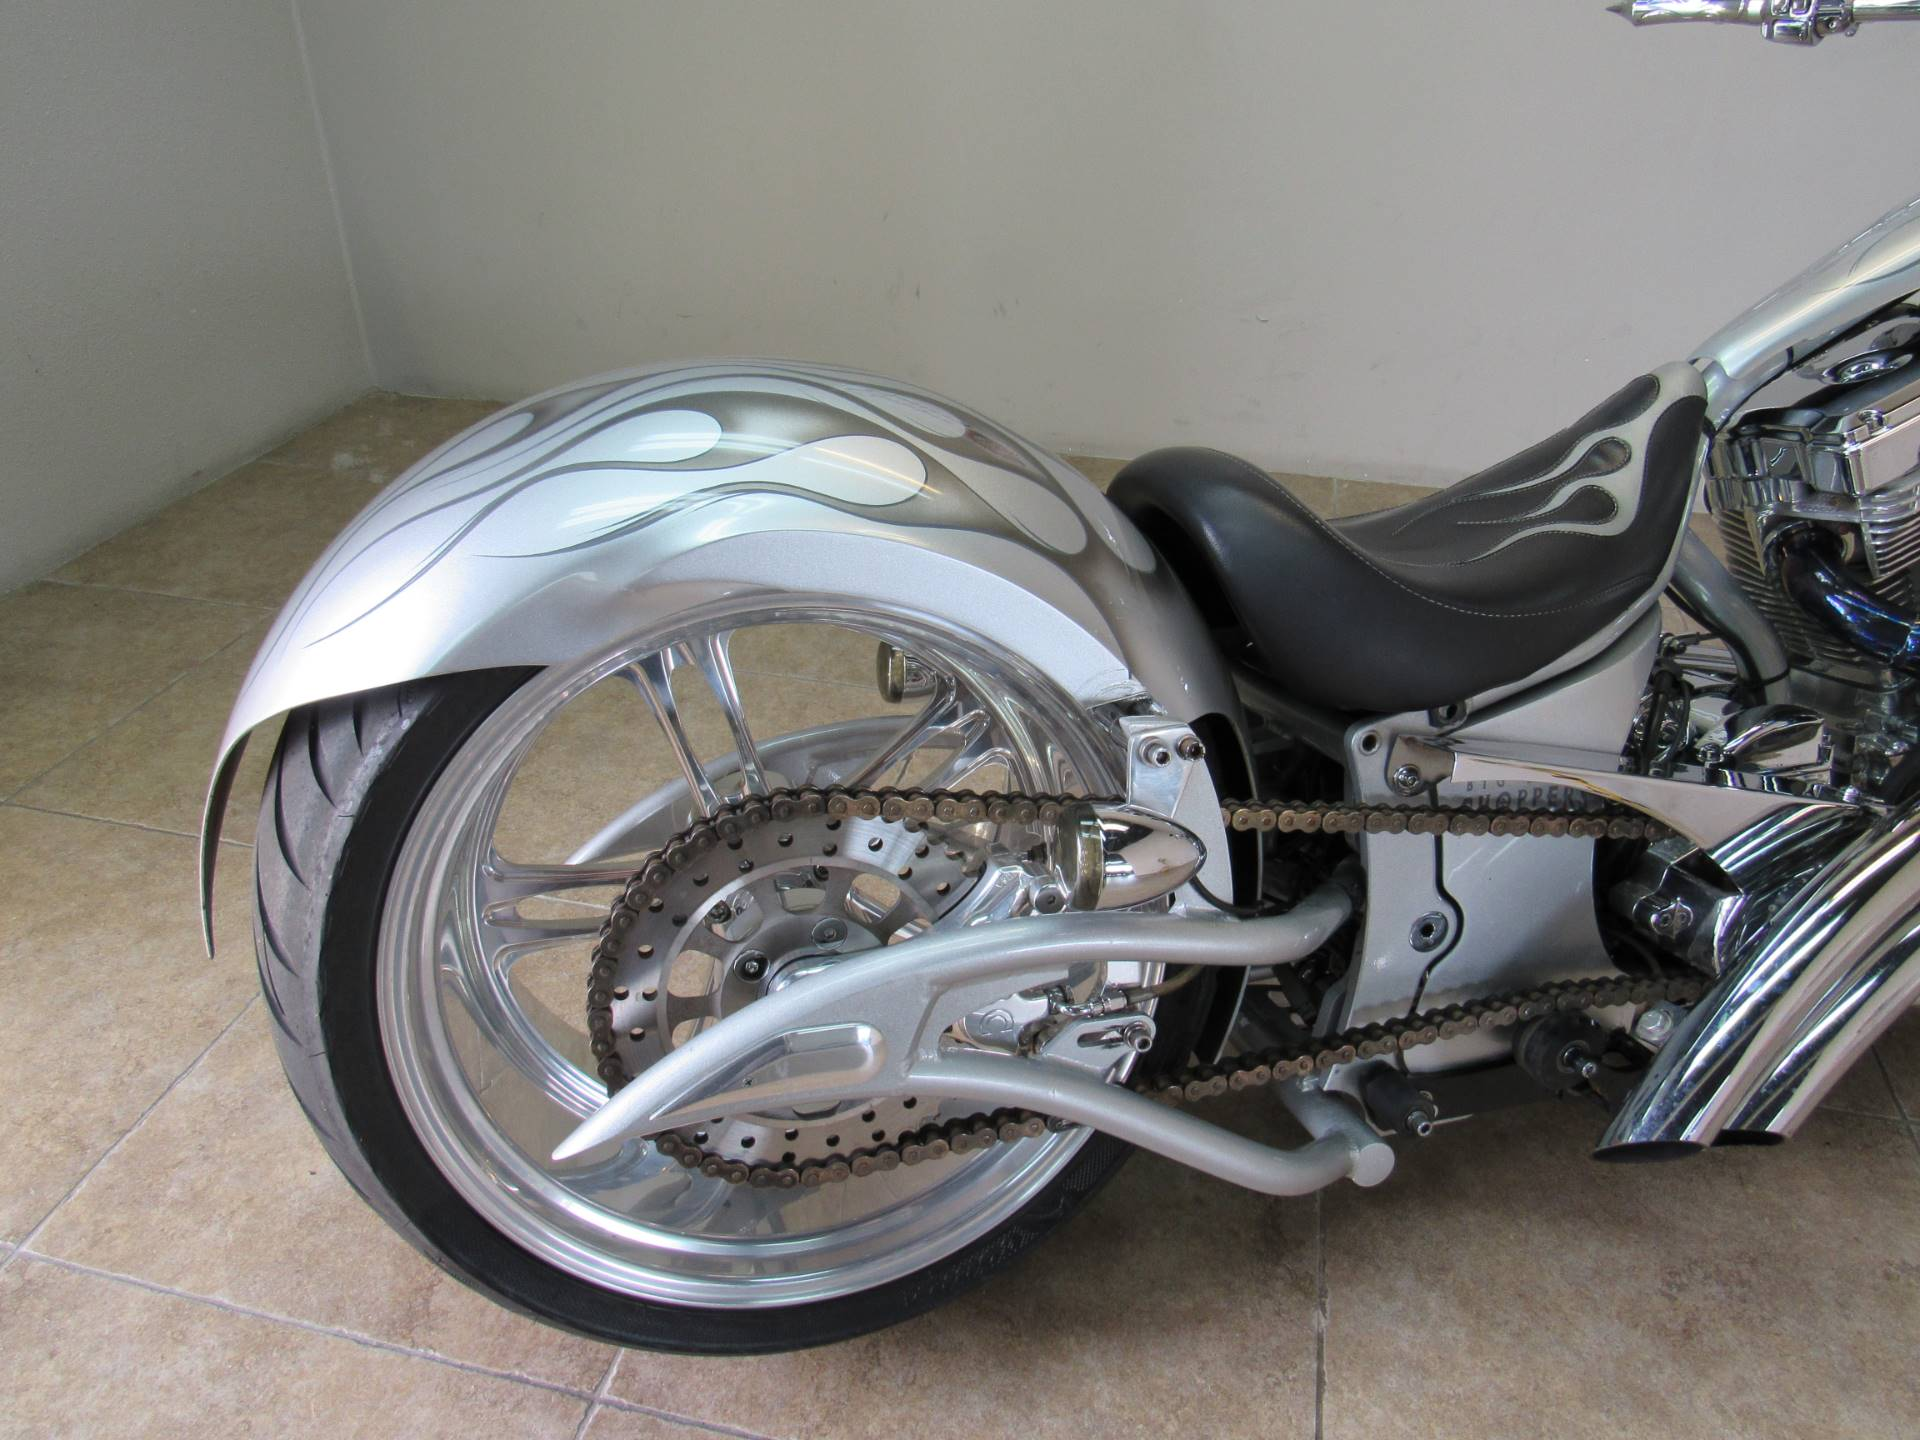 2006 Big Bear Choppers Sled Prostreet (CA) - [SLEDPROSTREET] - Silver in Temecula, California - Photo 8